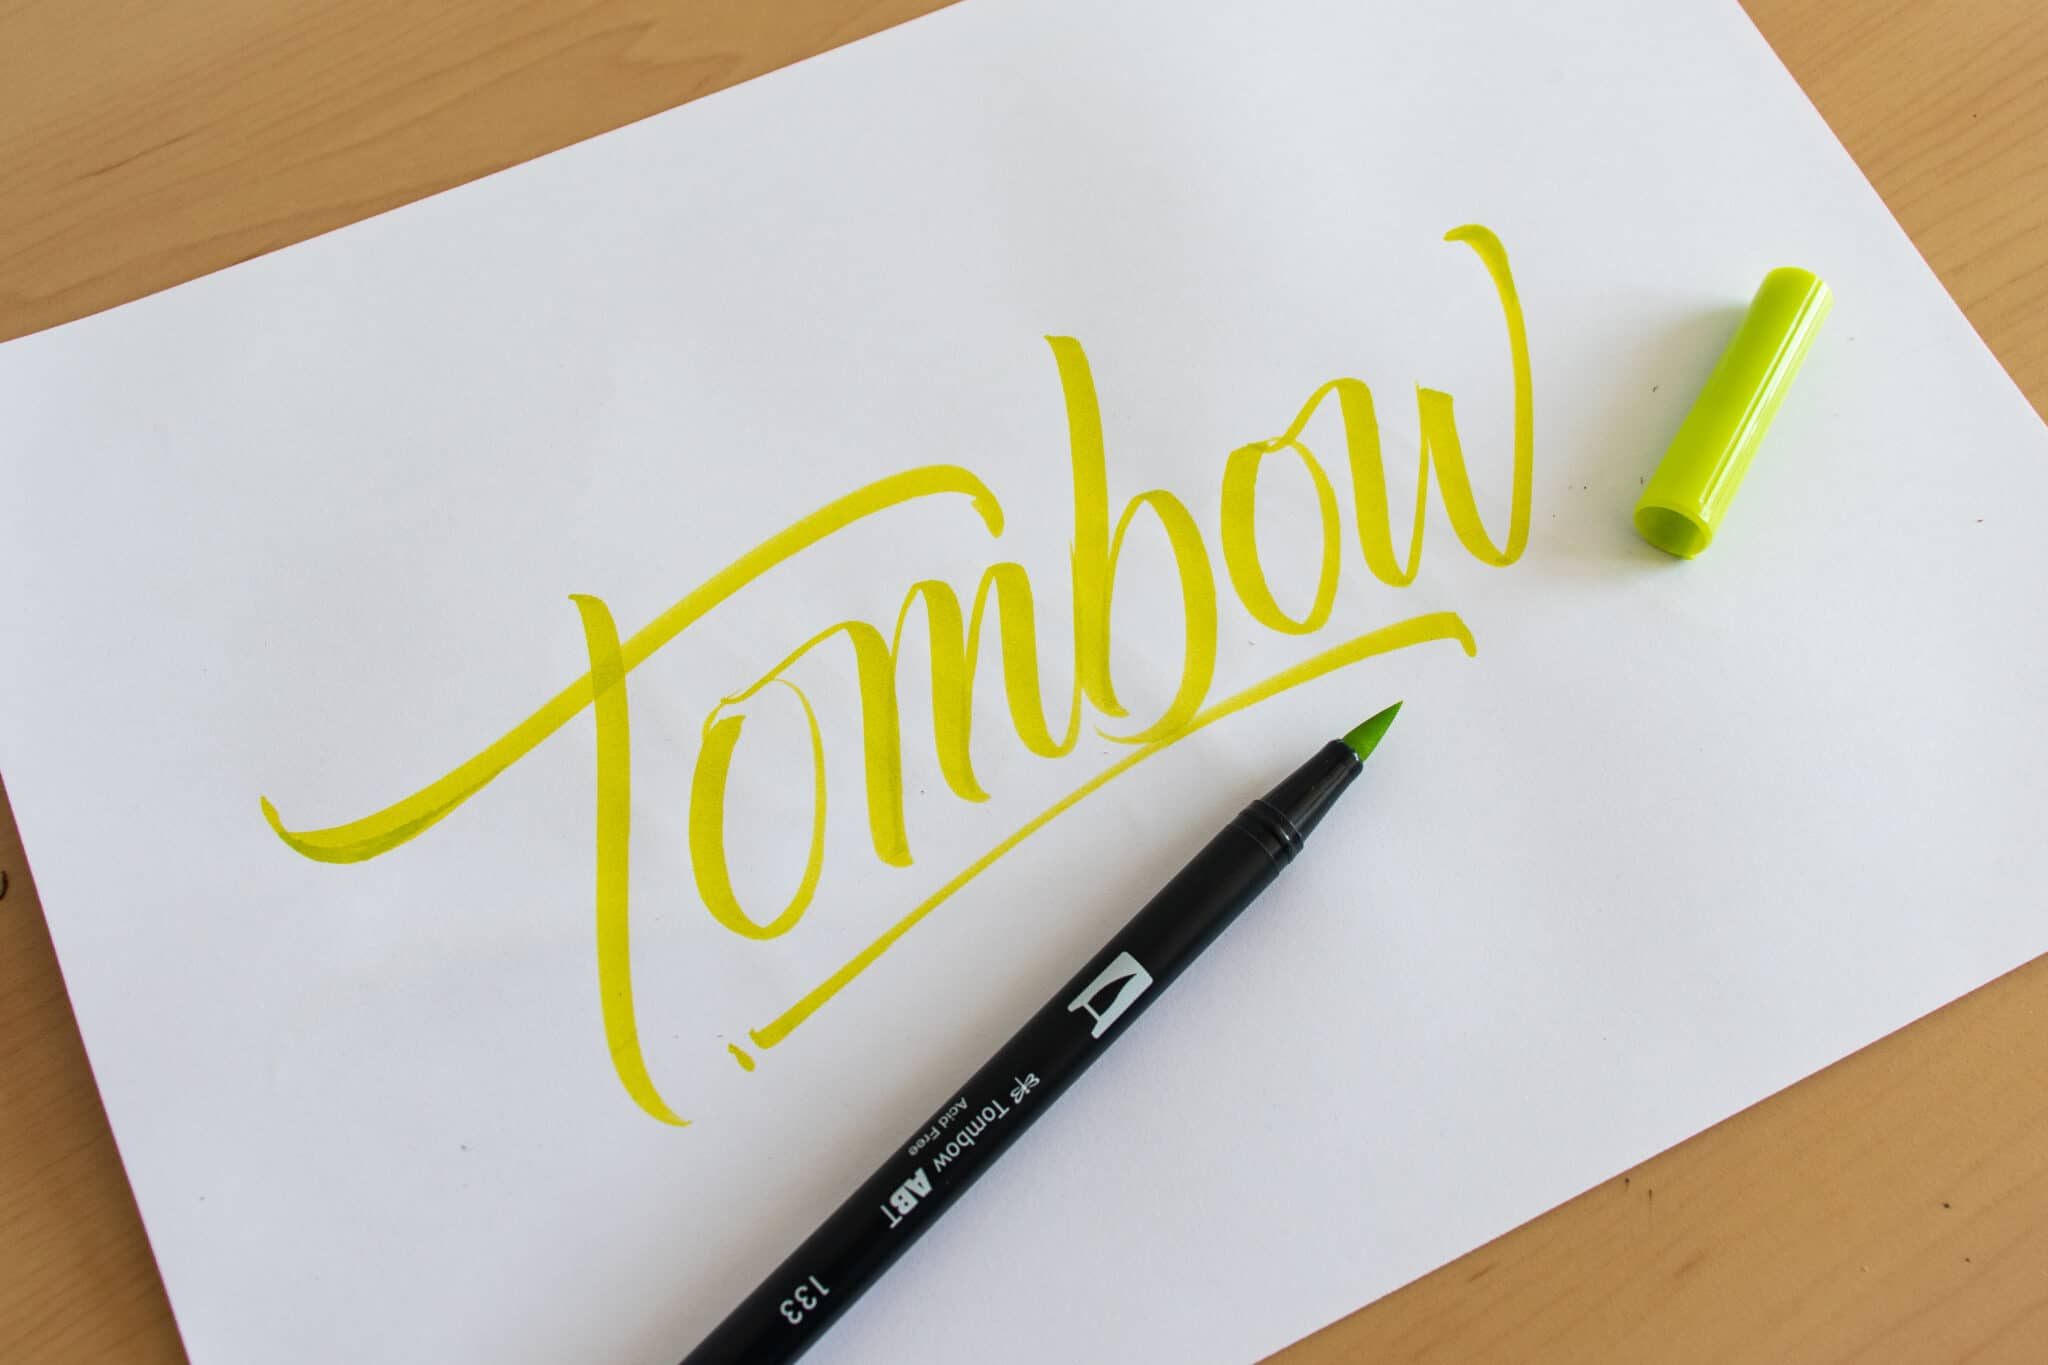 Tombow Dual Brush Pen - sample calligraphy